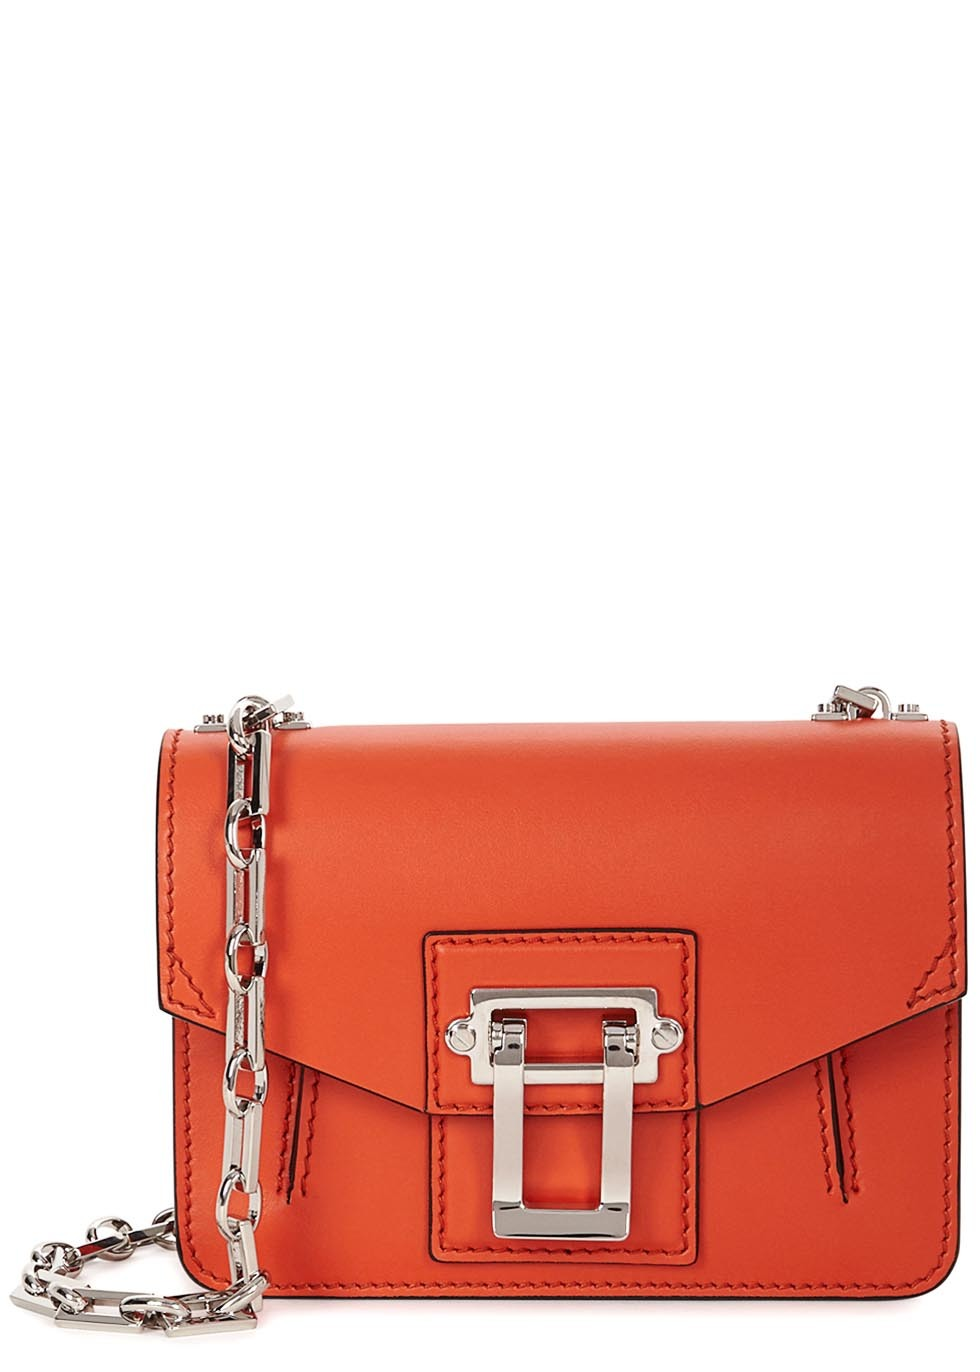 Hava Orange Leather Cross Body Bag - predominant colour: bright orange; secondary colour: silver; occasions: casual; type of pattern: standard; style: messenger; length: across body/long; size: small; material: leather; pattern: plain; finish: plain; embellishment: chain/metal; season: s/s 2016; wardrobe: highlight